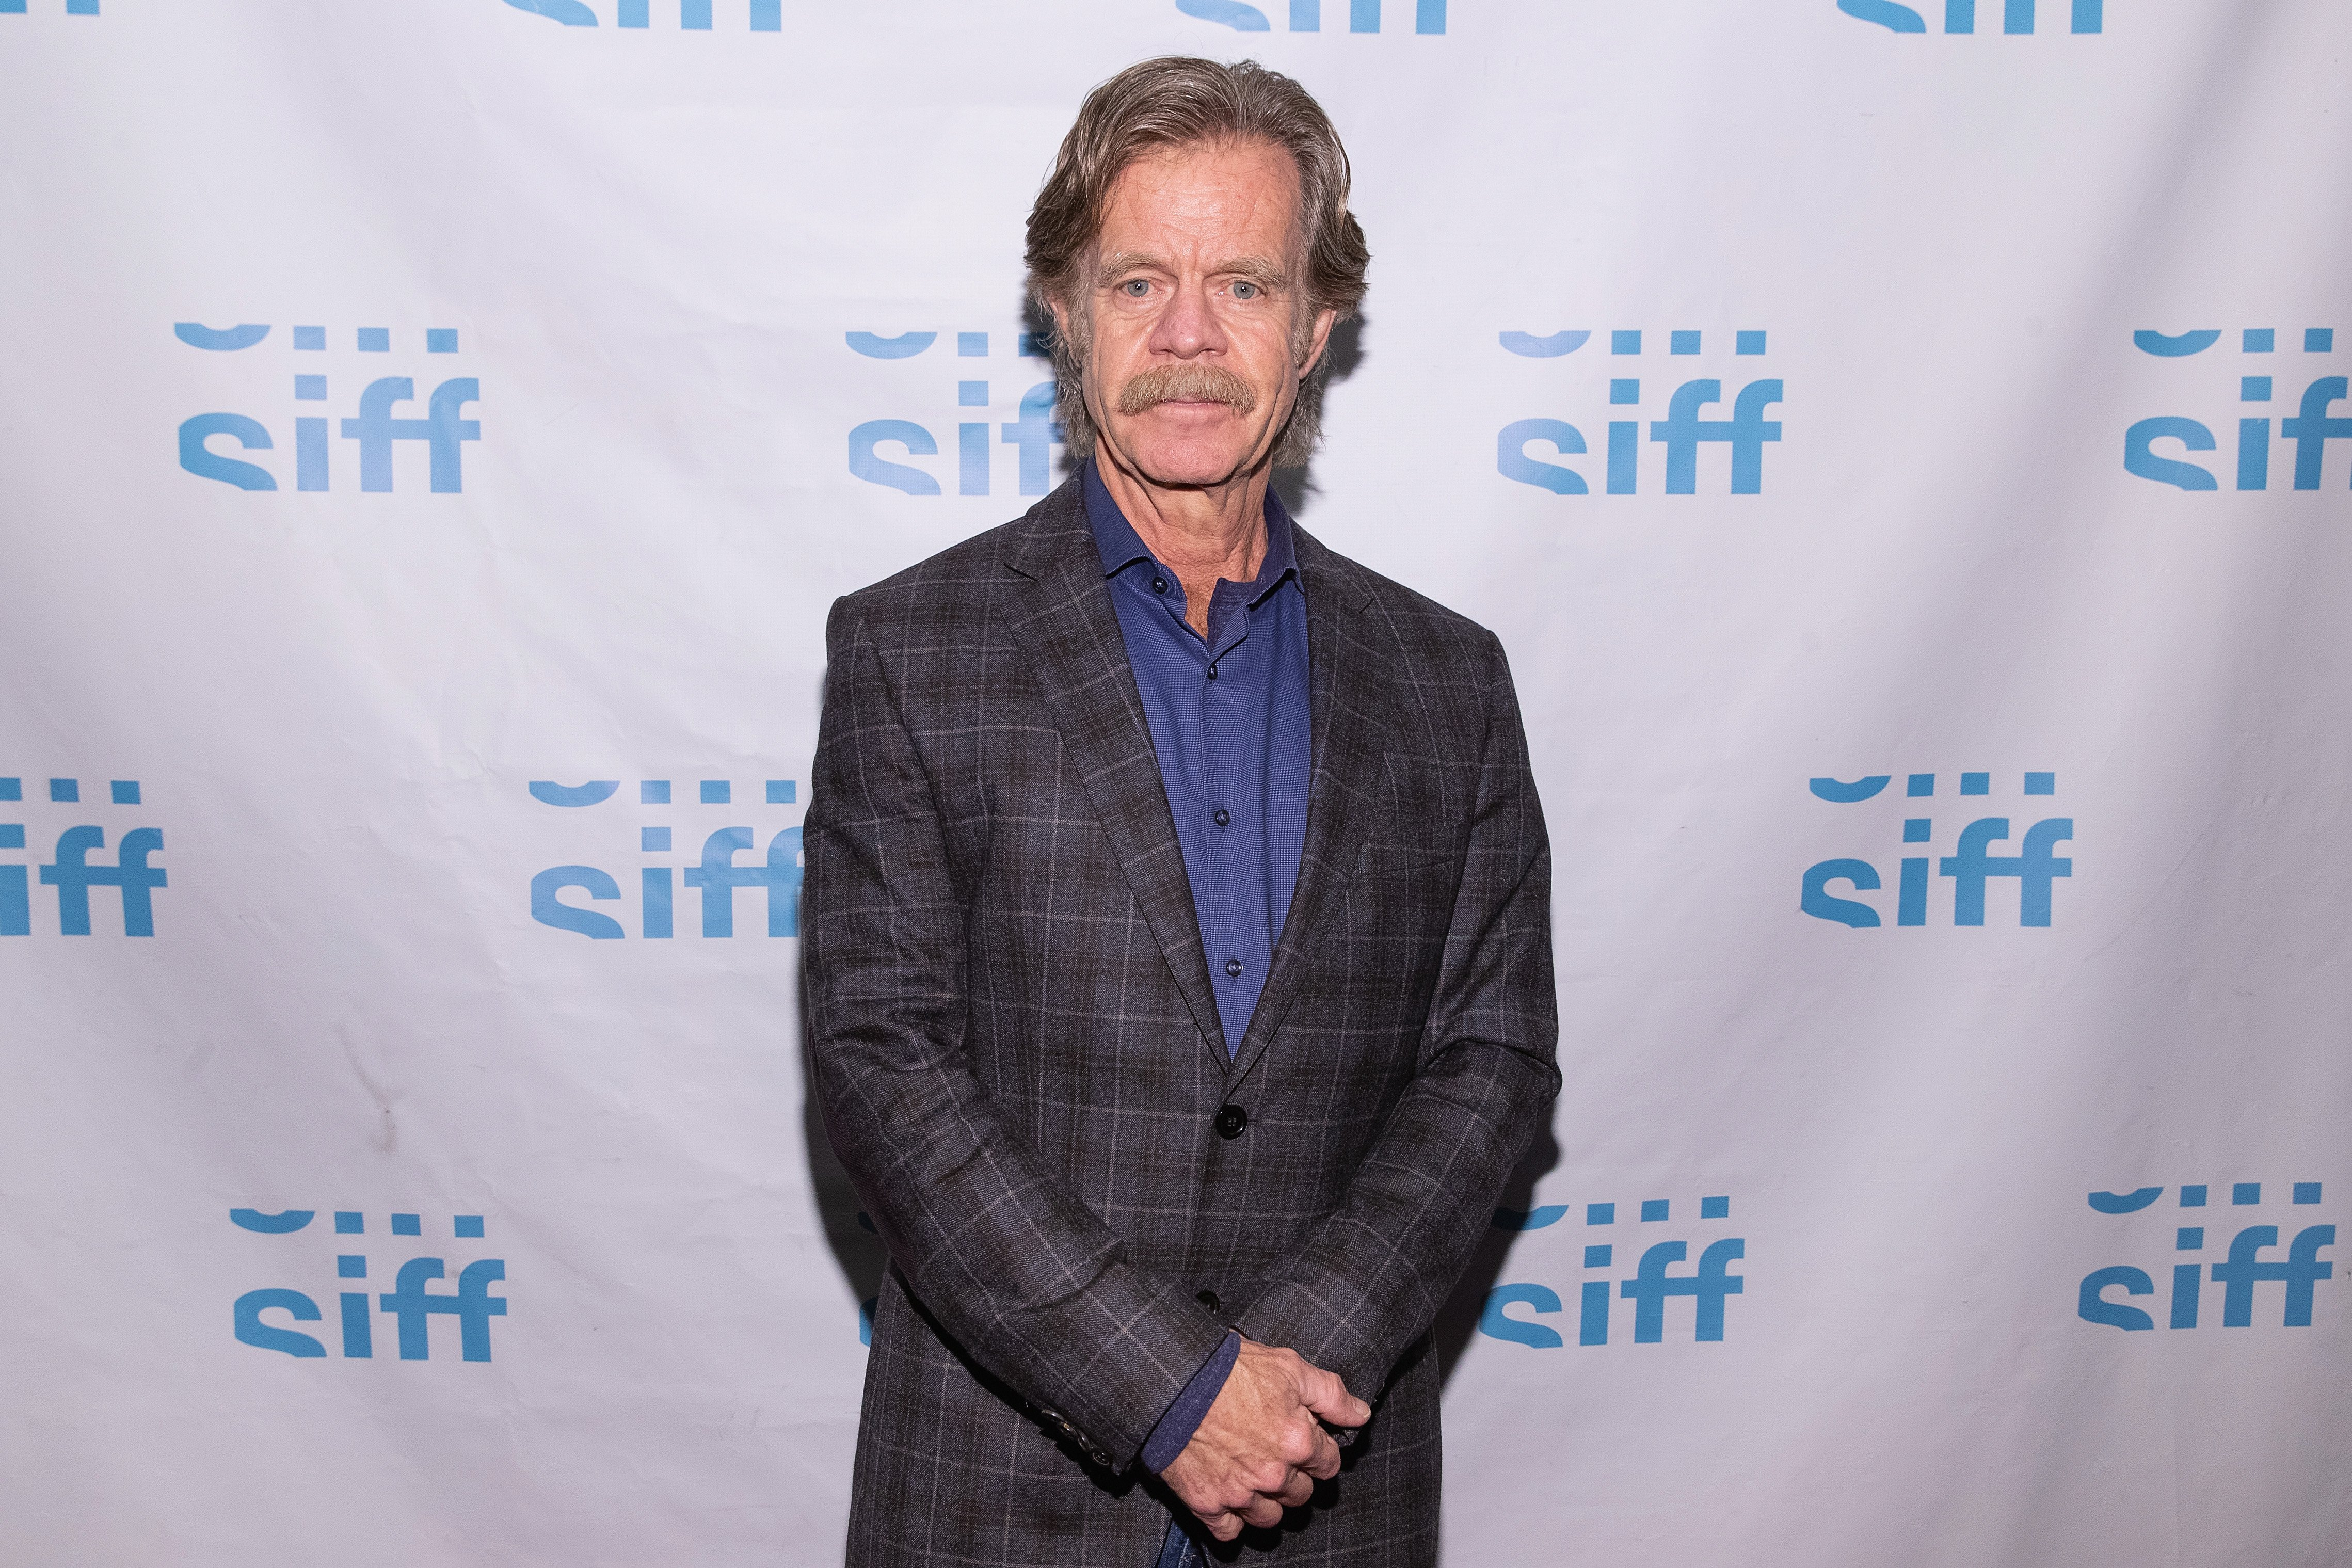 """William H. Macy at screening of the film """"Stealing Cars"""" on March 7, 2019 